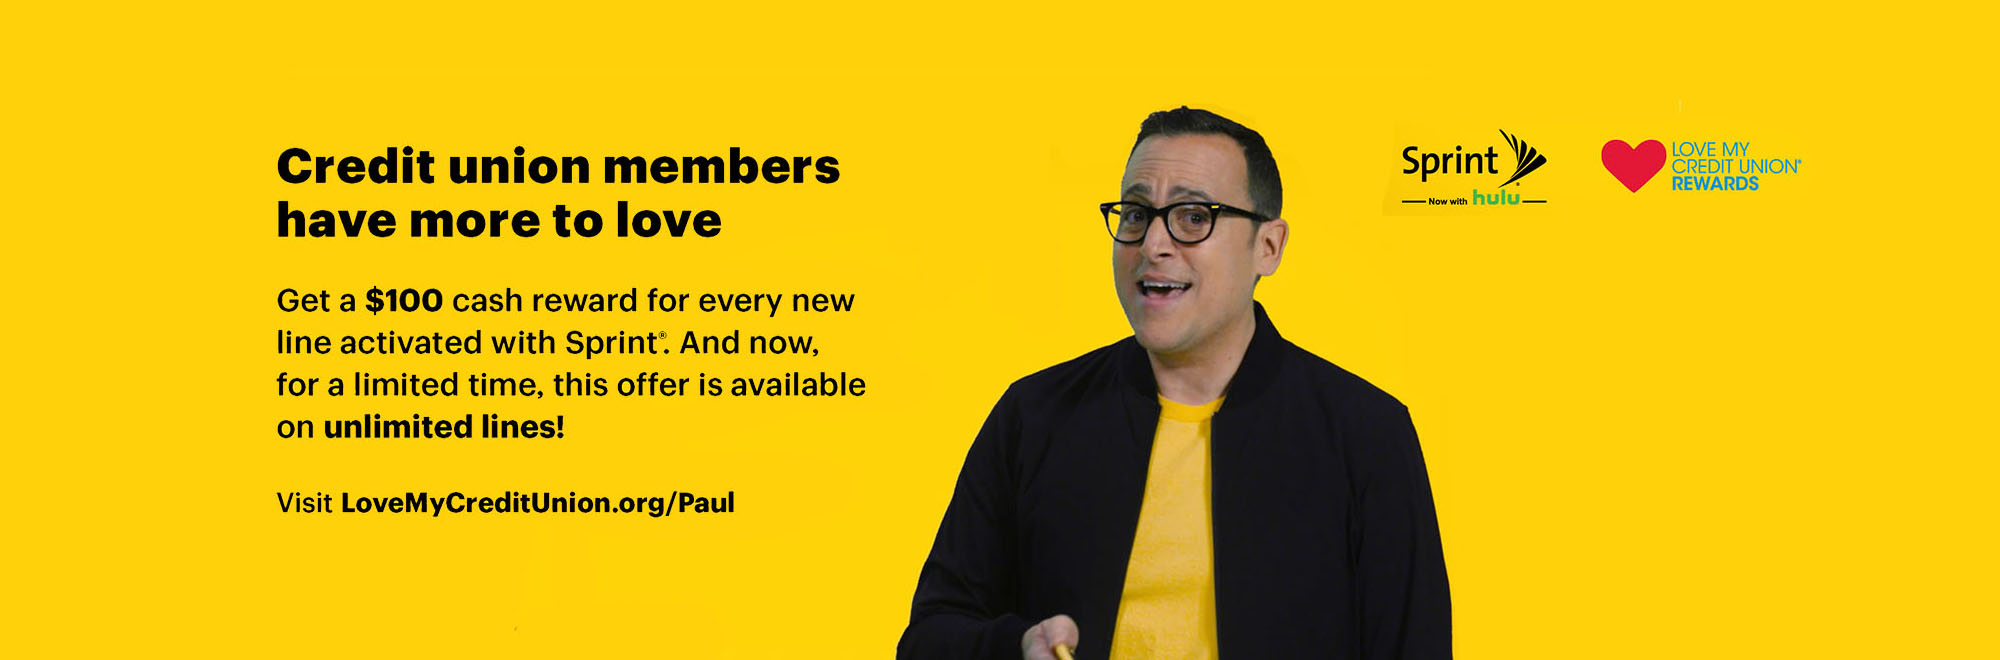 Visit LoveMyCreditunion.org/Paul to get a $100 cash reward for every new line activated with Sprint.